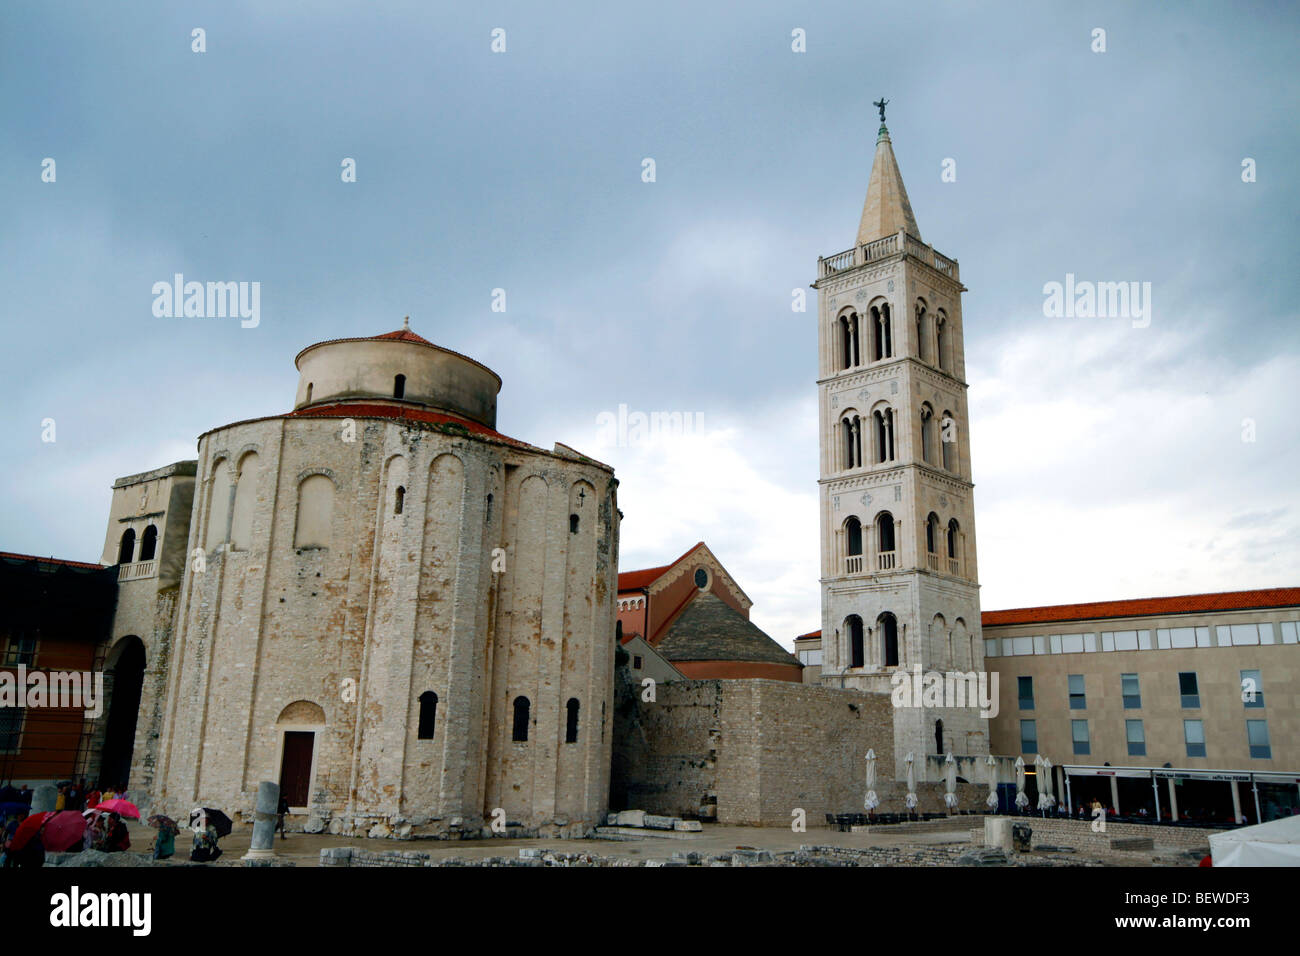 Roman stonewalls in front of Sveti Donat Church, Zadar, Croatia, wide-angle view - Stock Image